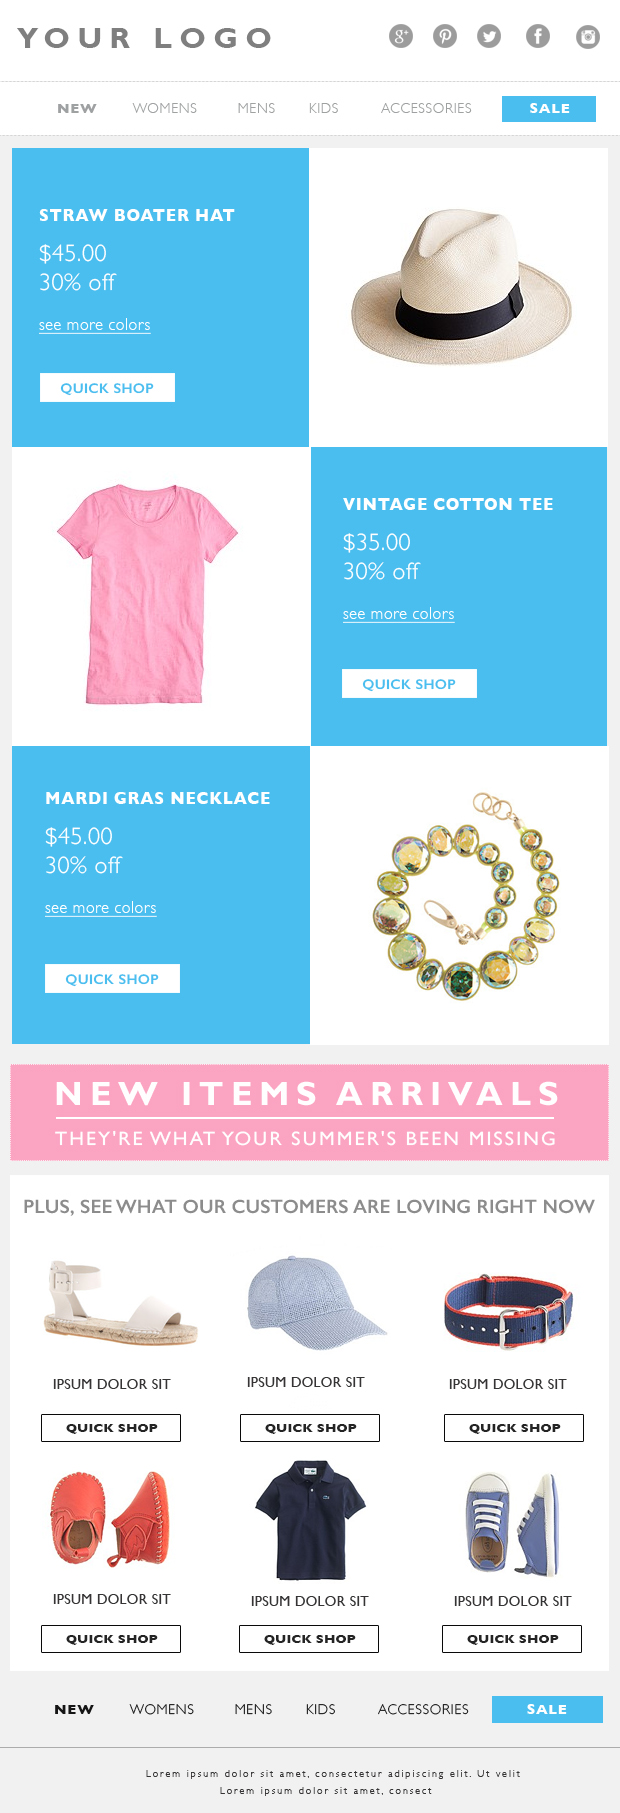 email marketing eblast template email template fashion email – Marketing Email Template